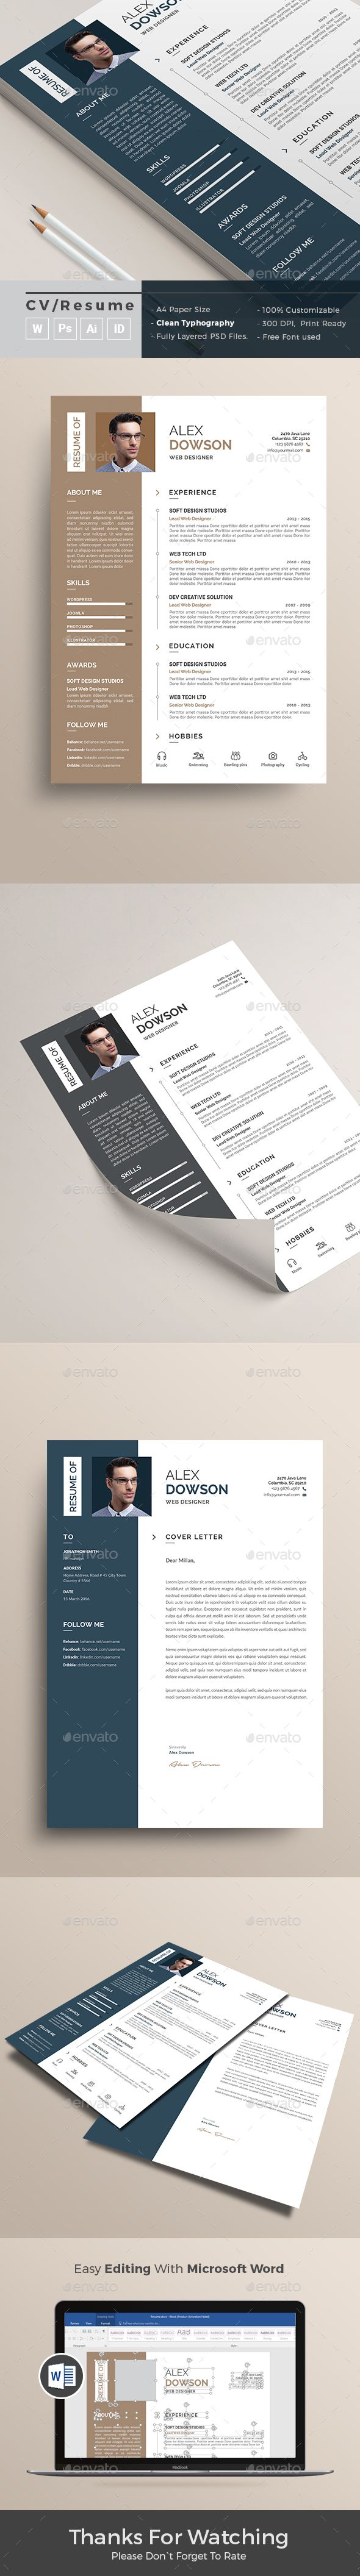 #Resume - Resumes #Stationery Download here: https://graphicriver.net/item/resume/19351300?ref=alena994